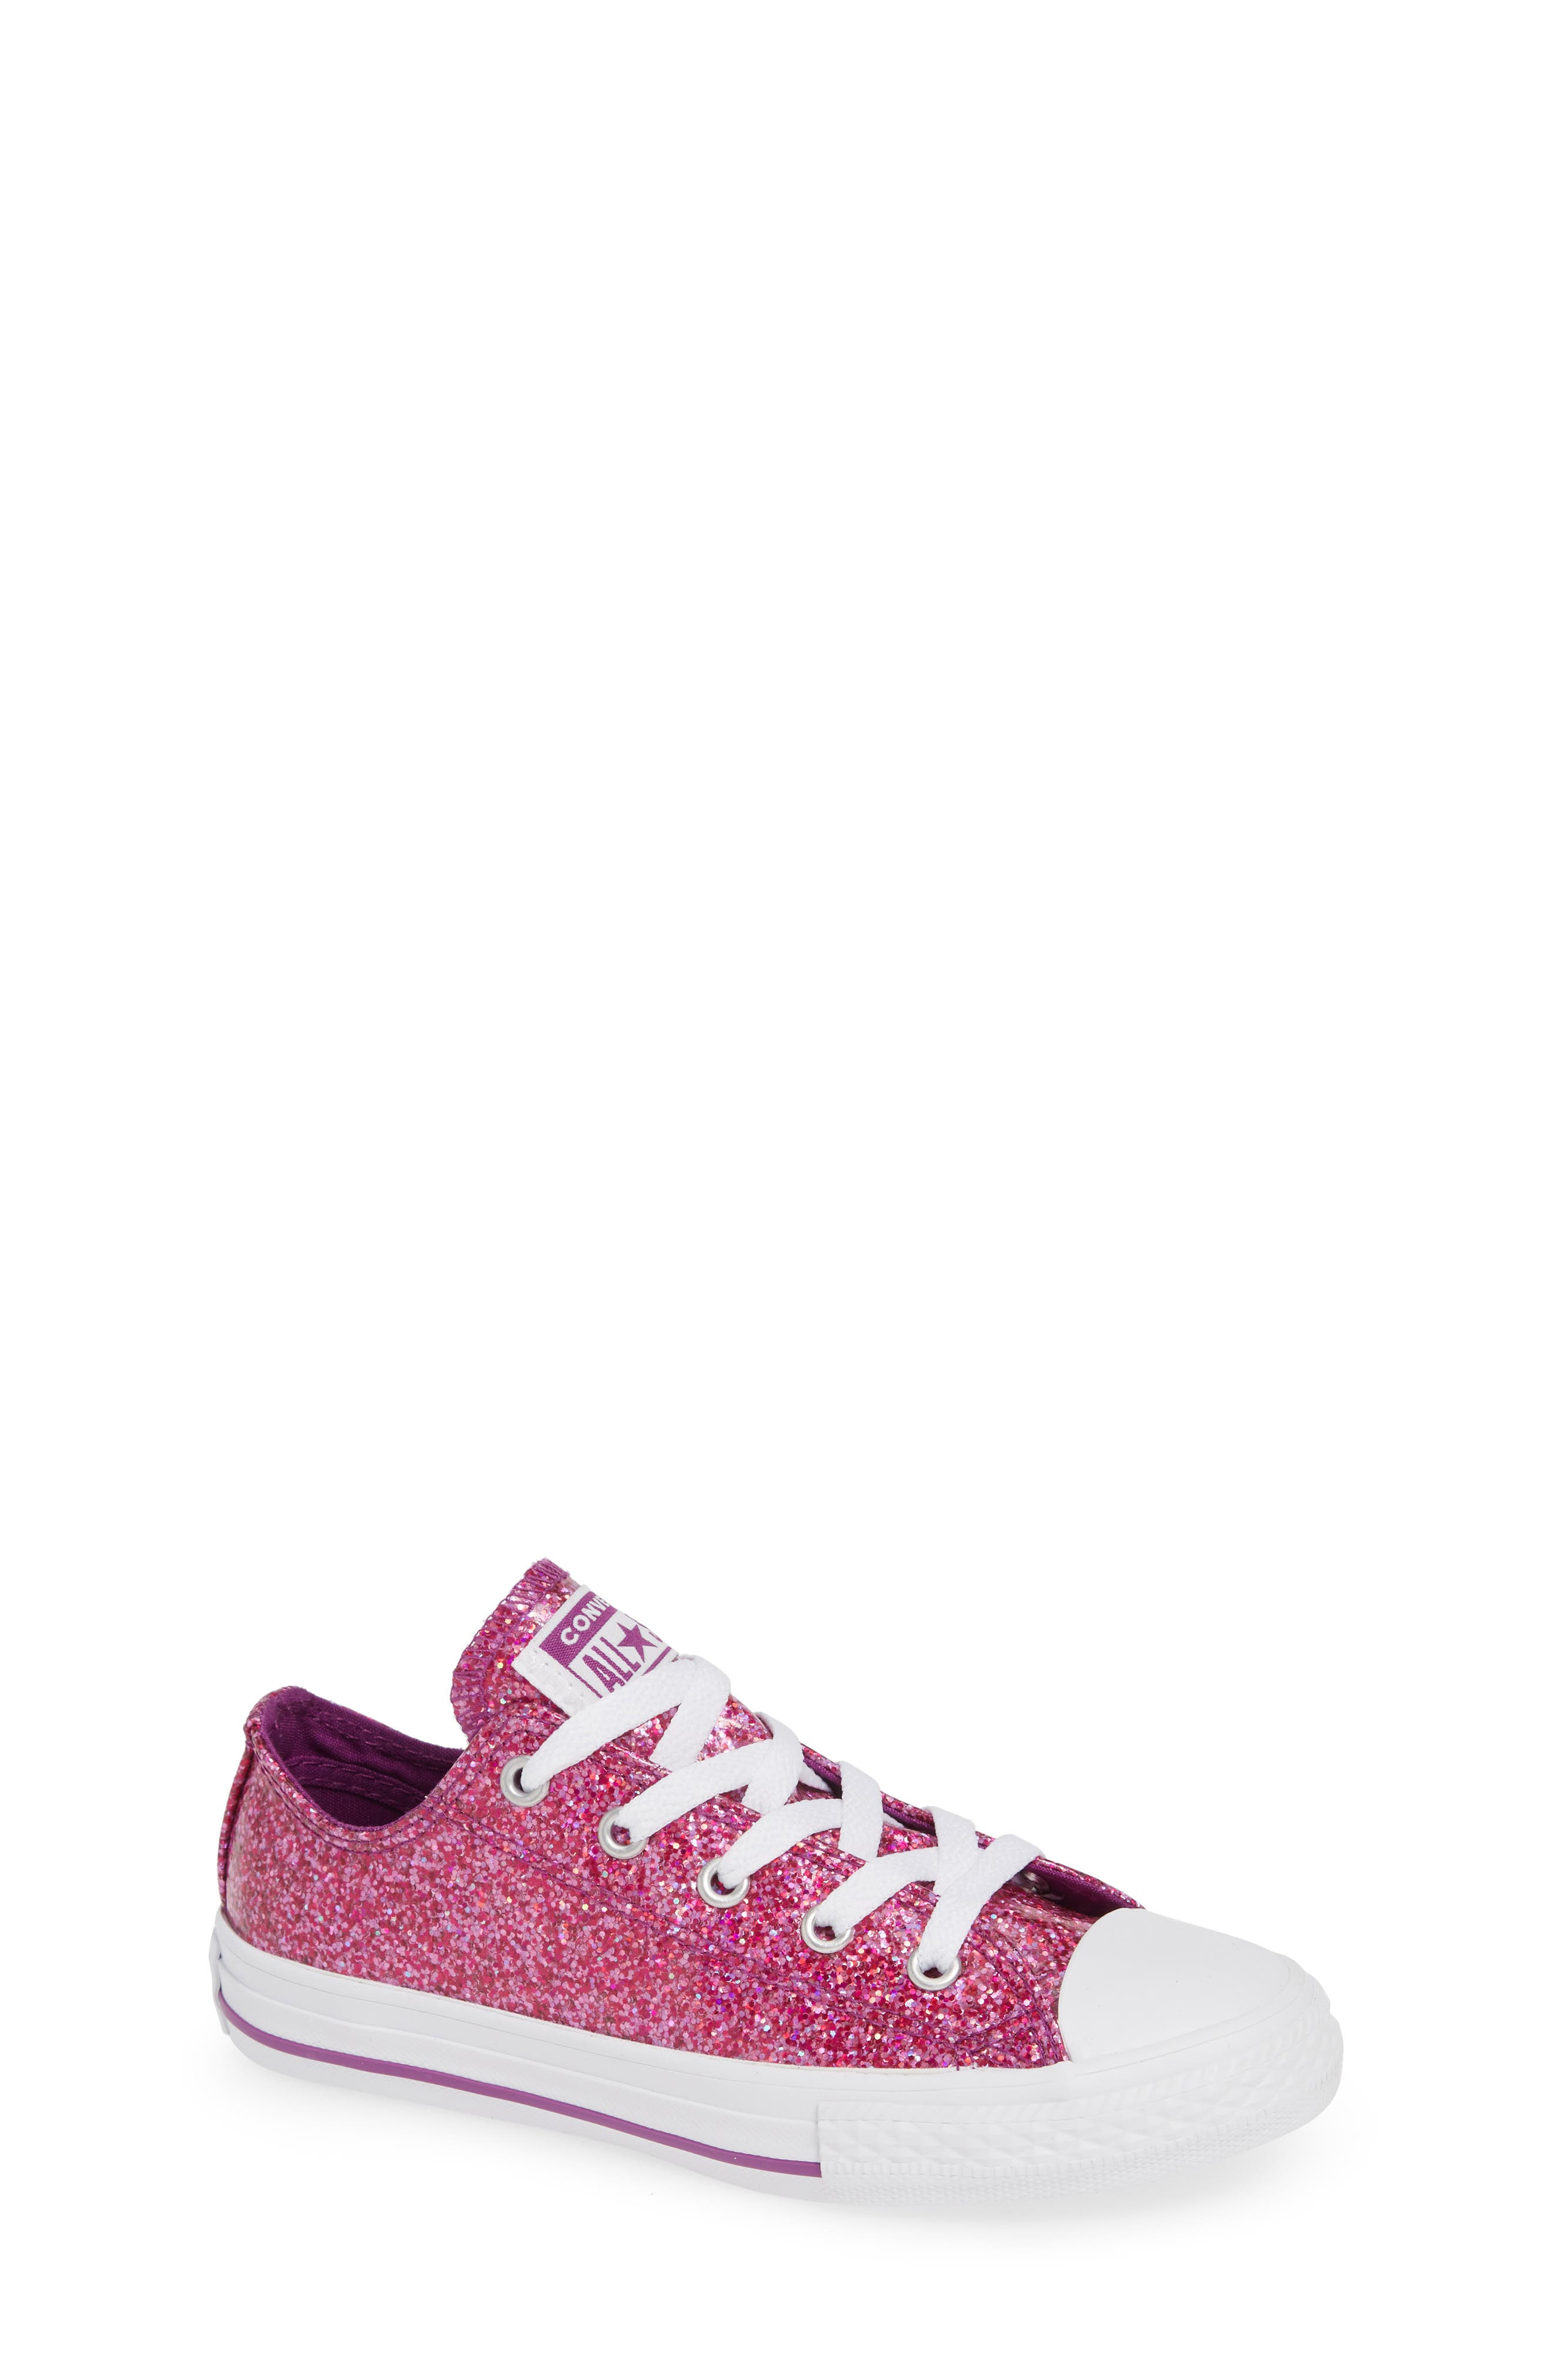 All Star<sup>®</sup> Seasonal Glitter OX Low Top Sneaker,                             Main thumbnail 1, color,                             ICON VIOLET